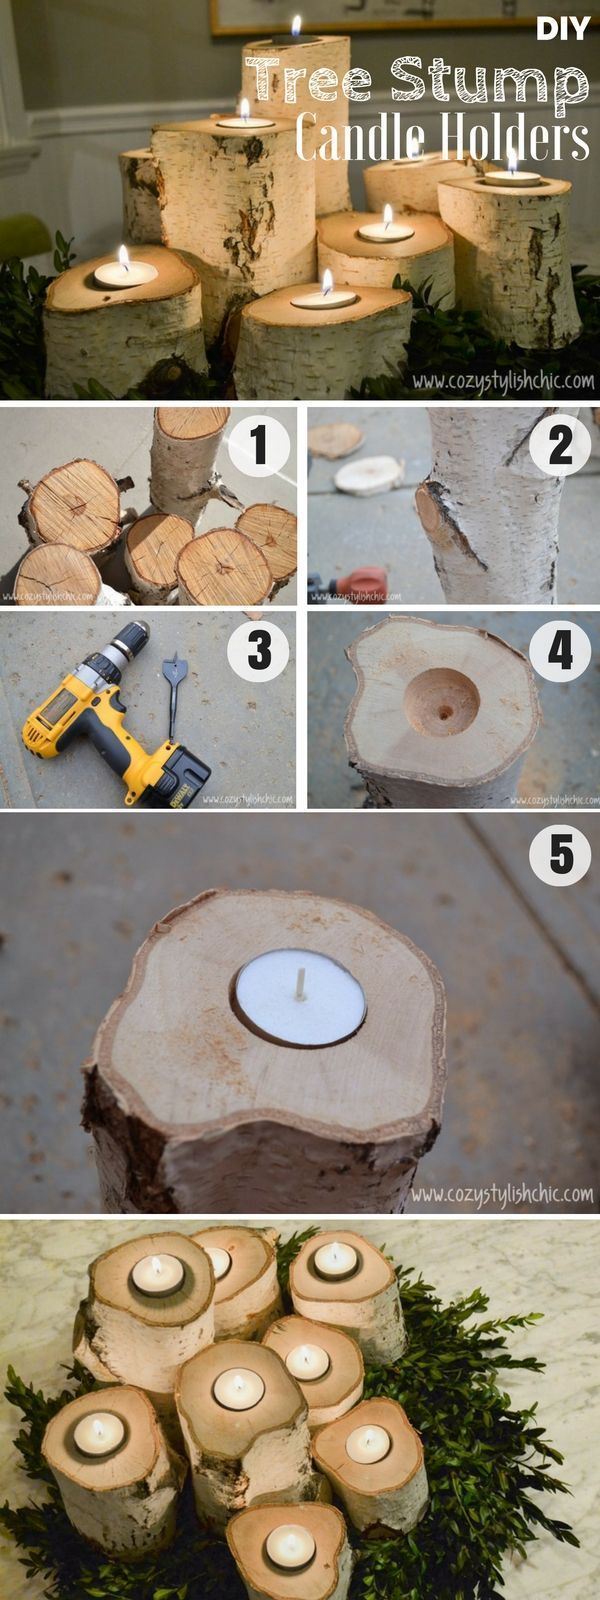 best wood proyects diy images on pinterest projects wooden